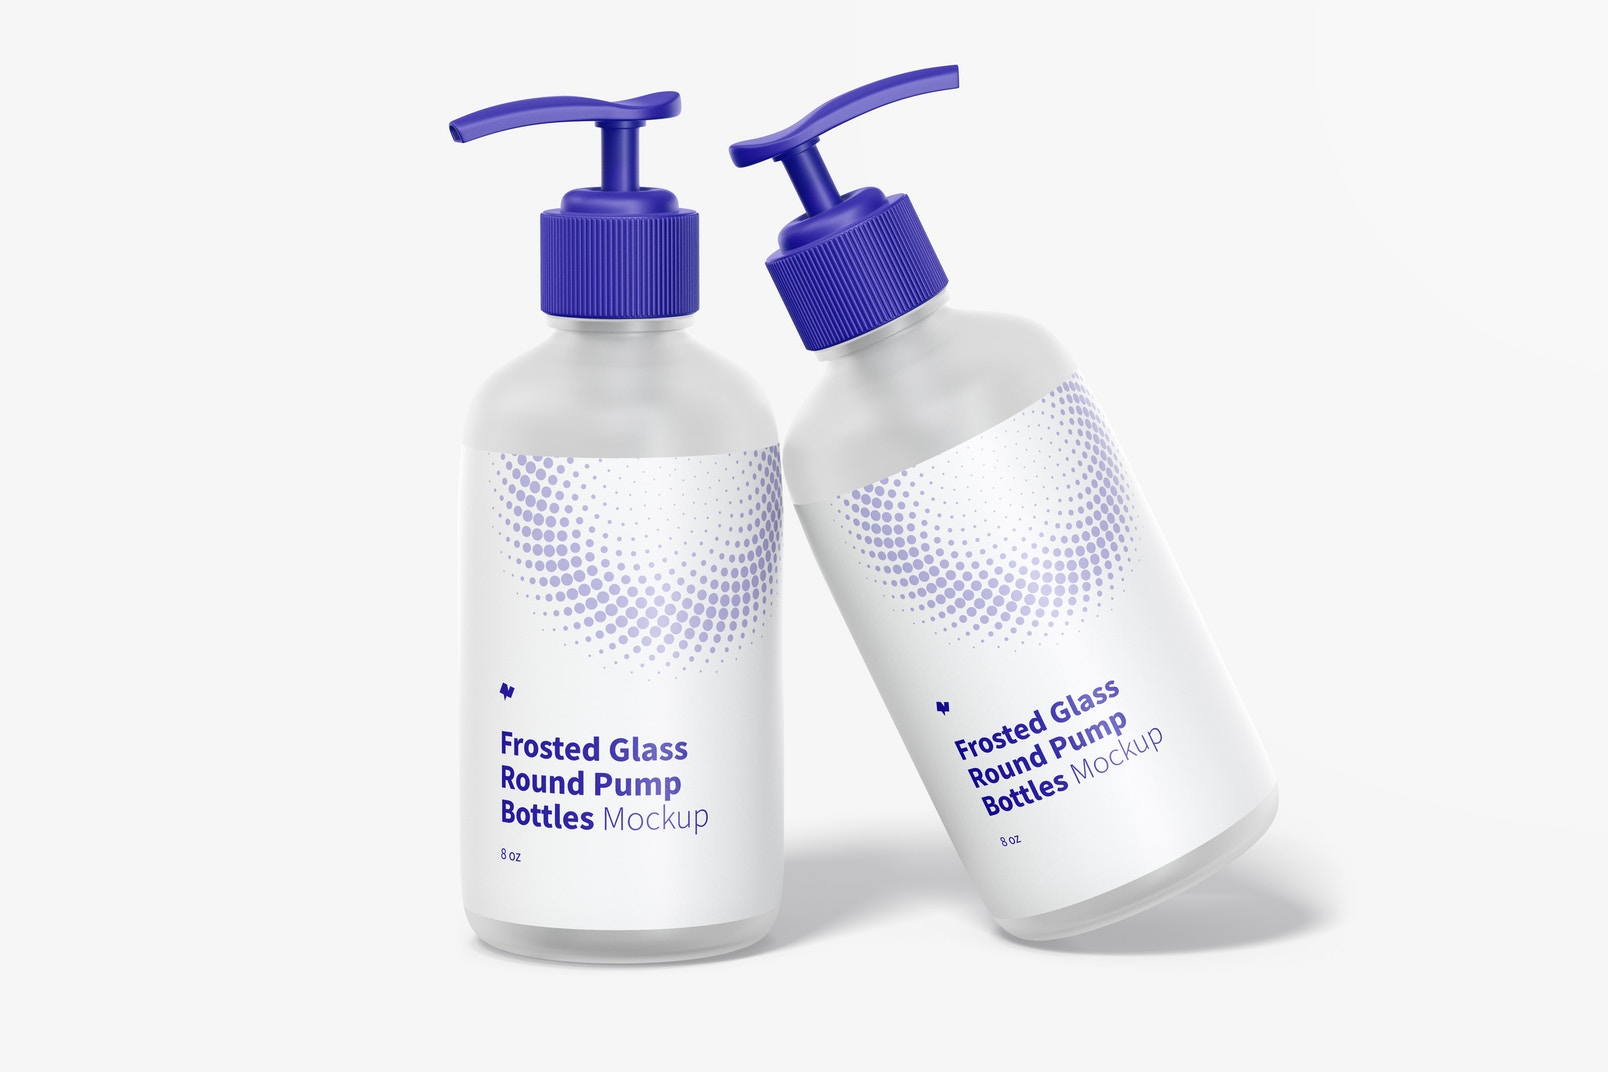 8 oz Frosted Glass Round Pump Bottles Mockup, Leaned